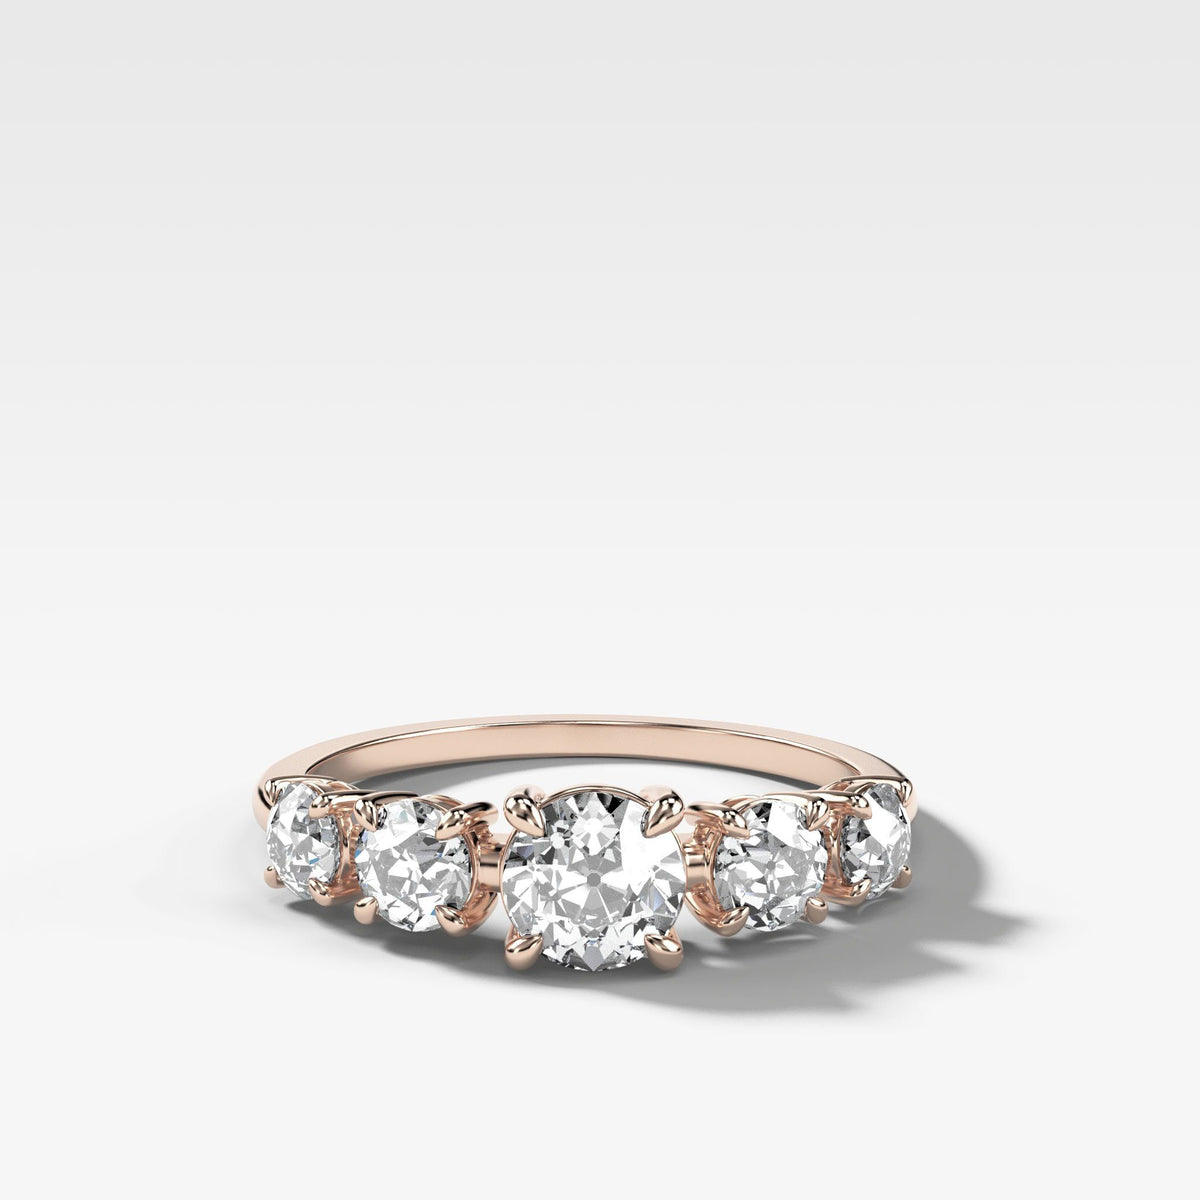 Graduated Five Stone ring with Old Euro Cut Diamonds in Rose Gold by Good Stone